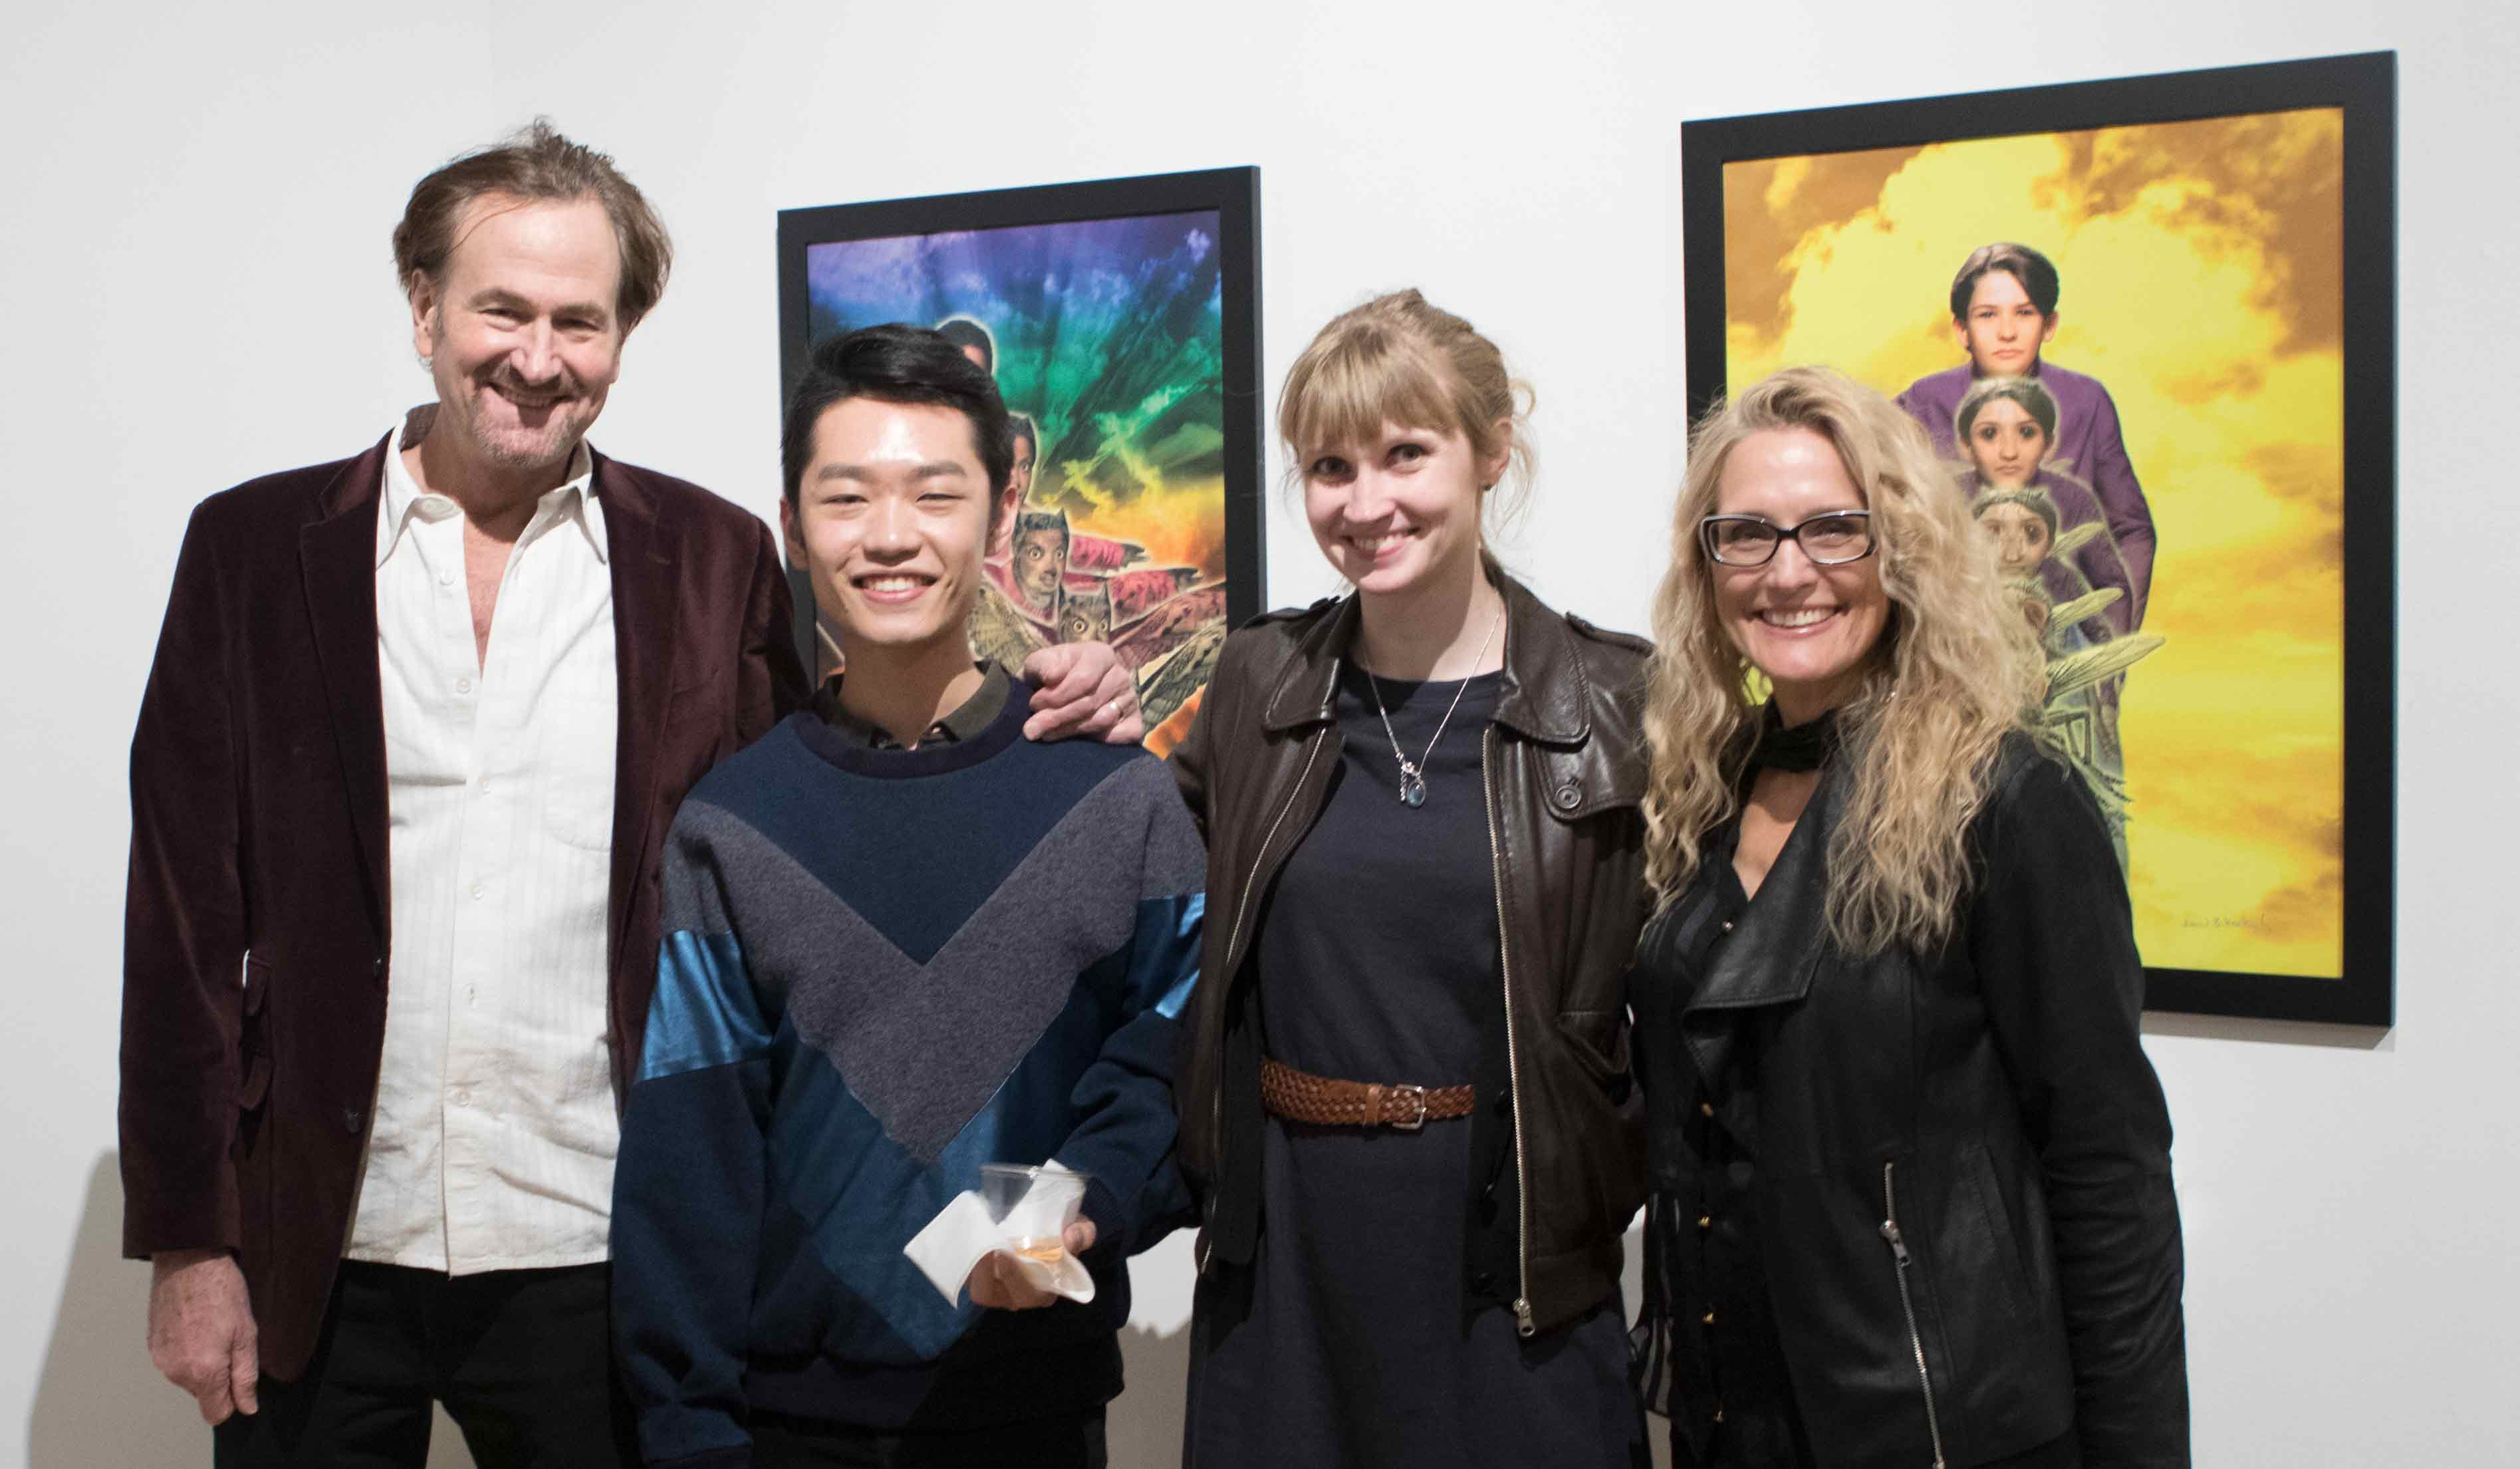 Four people standing together in front of a wall with two framed posters.